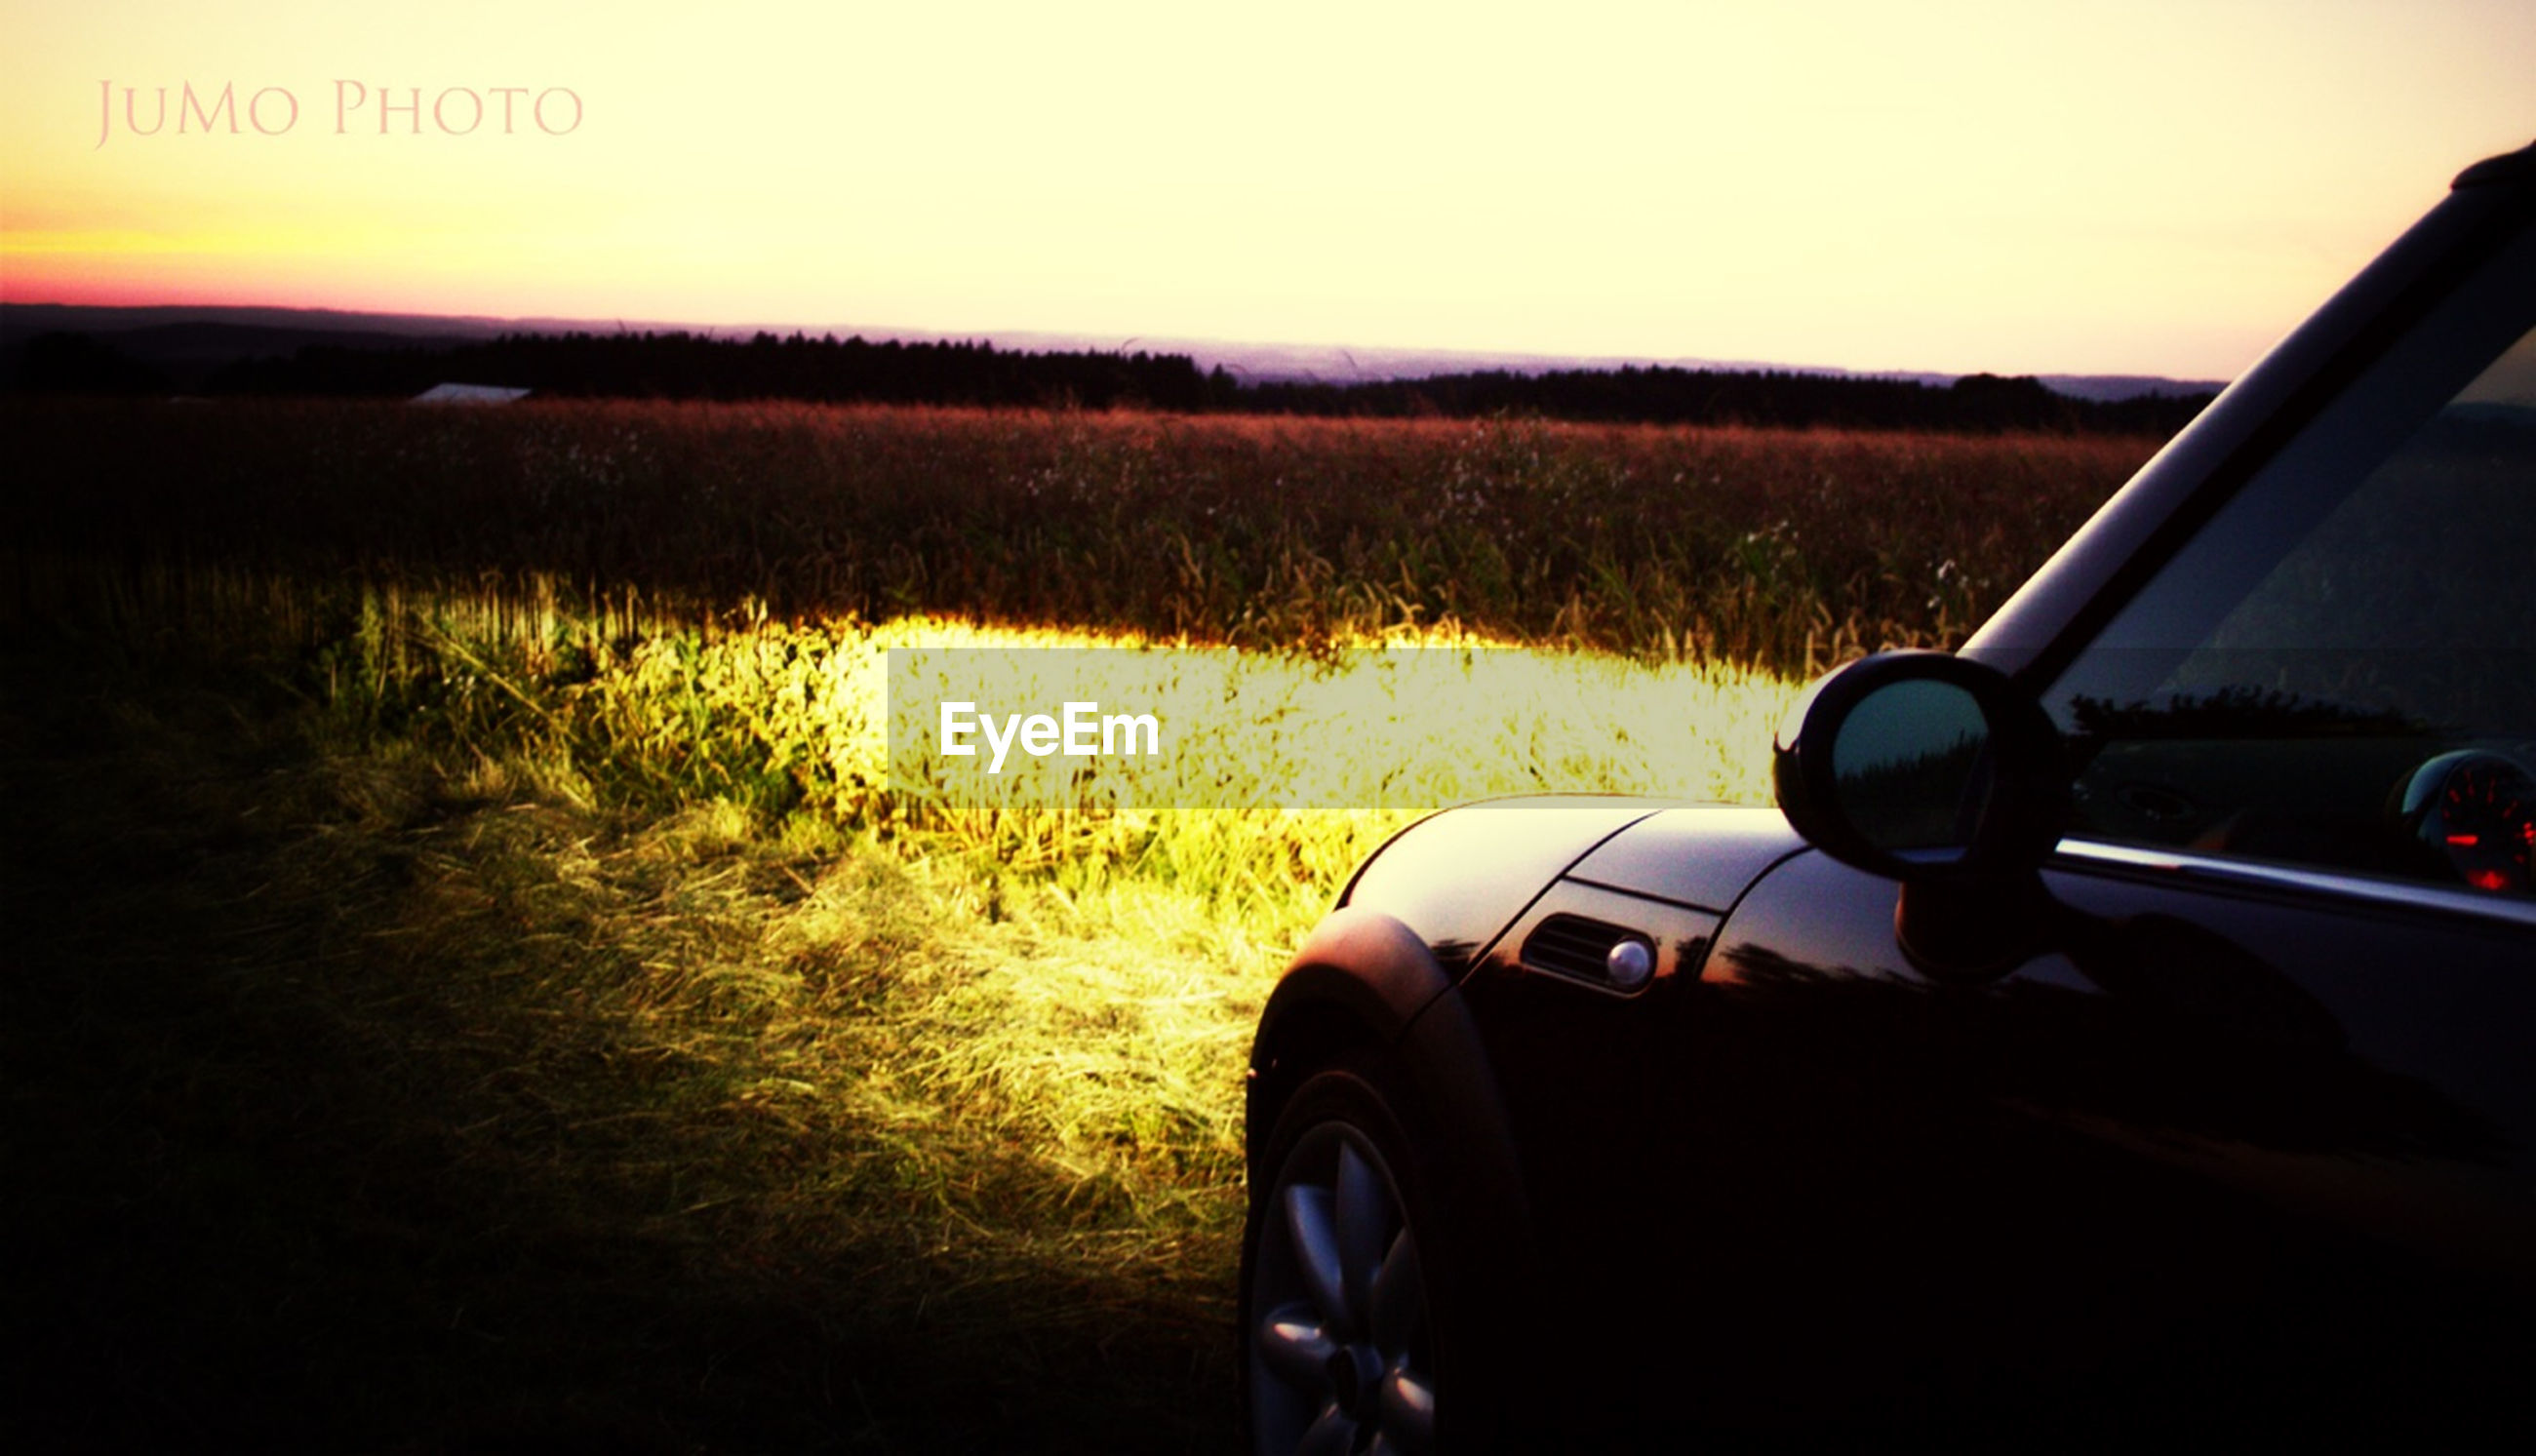 transportation, land vehicle, mode of transport, car, part of, car interior, vehicle interior, travel, cropped, road, landscape, road trip, side-view mirror, field, driving, windshield, sunset, close-up